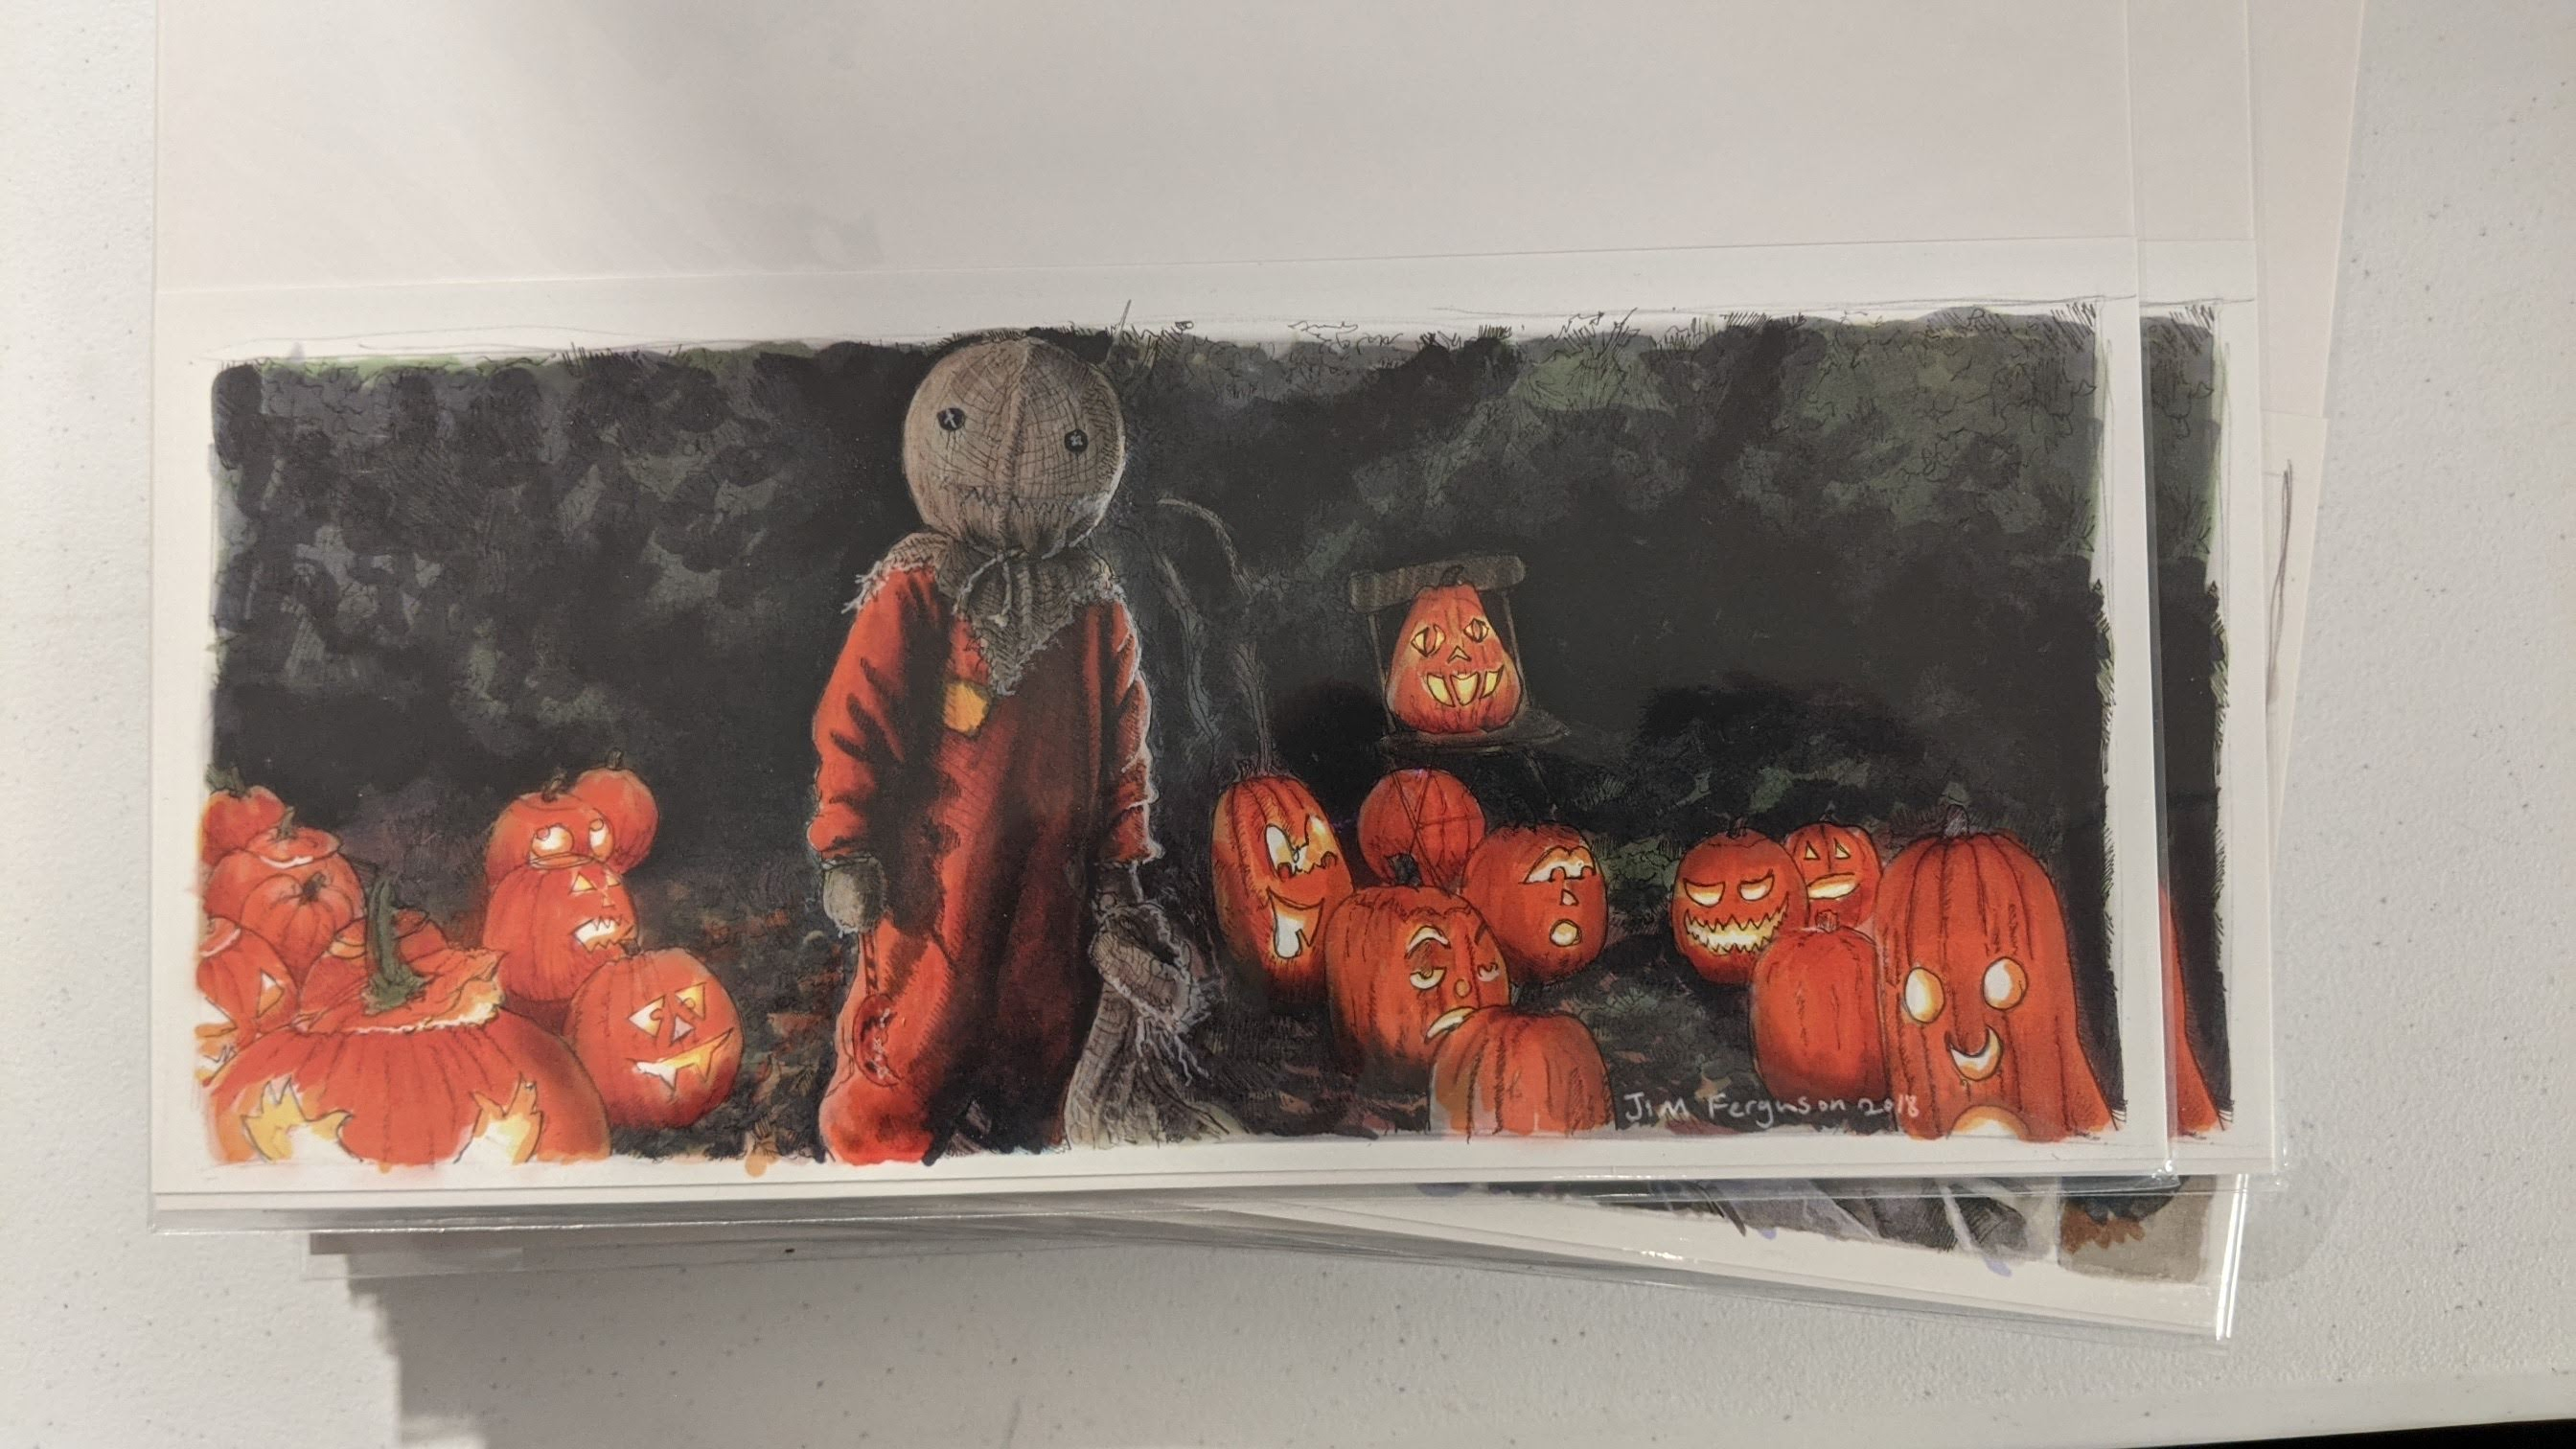 Trick or Treat Print by Jim Ferguson